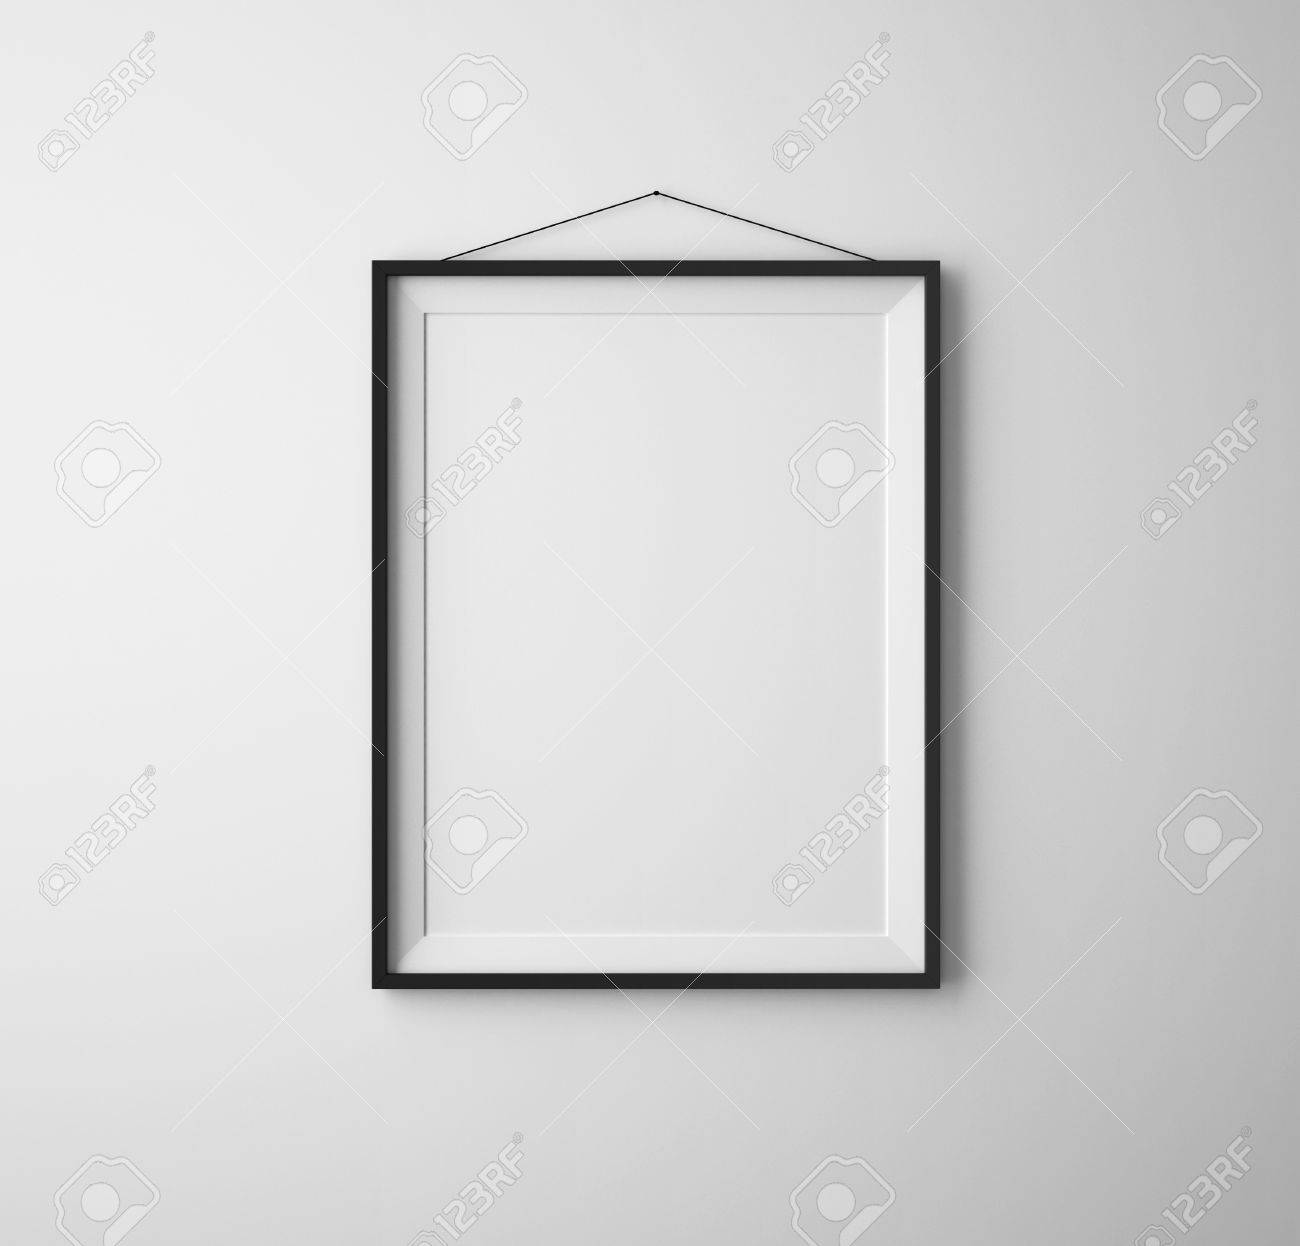 Black Frames On White Concrete Wall Stock Photo, Picture And Royalty ...